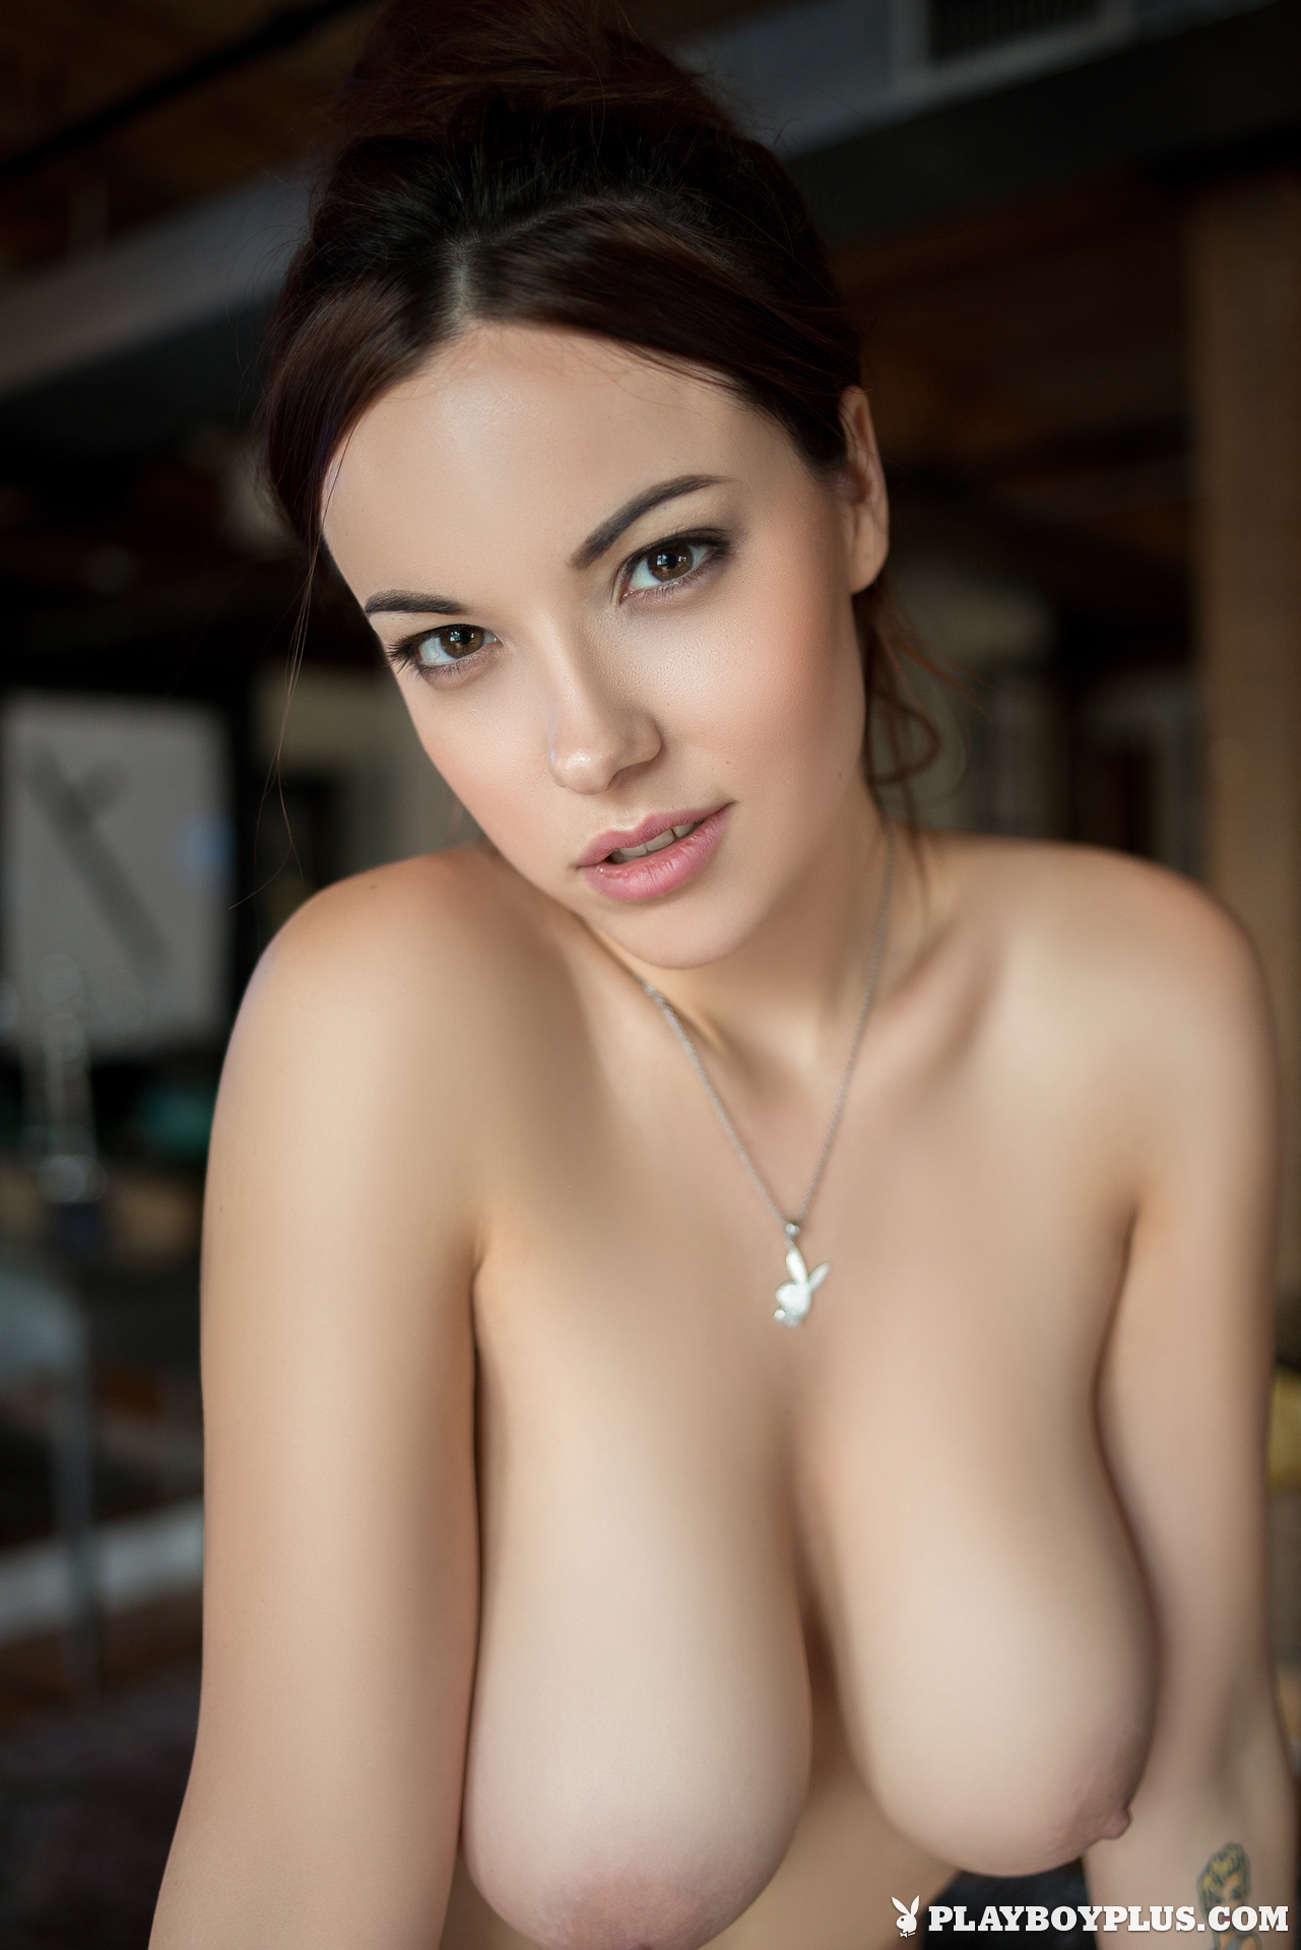 elizabeth-marxs-boobs-sofa-naked-playboy-21